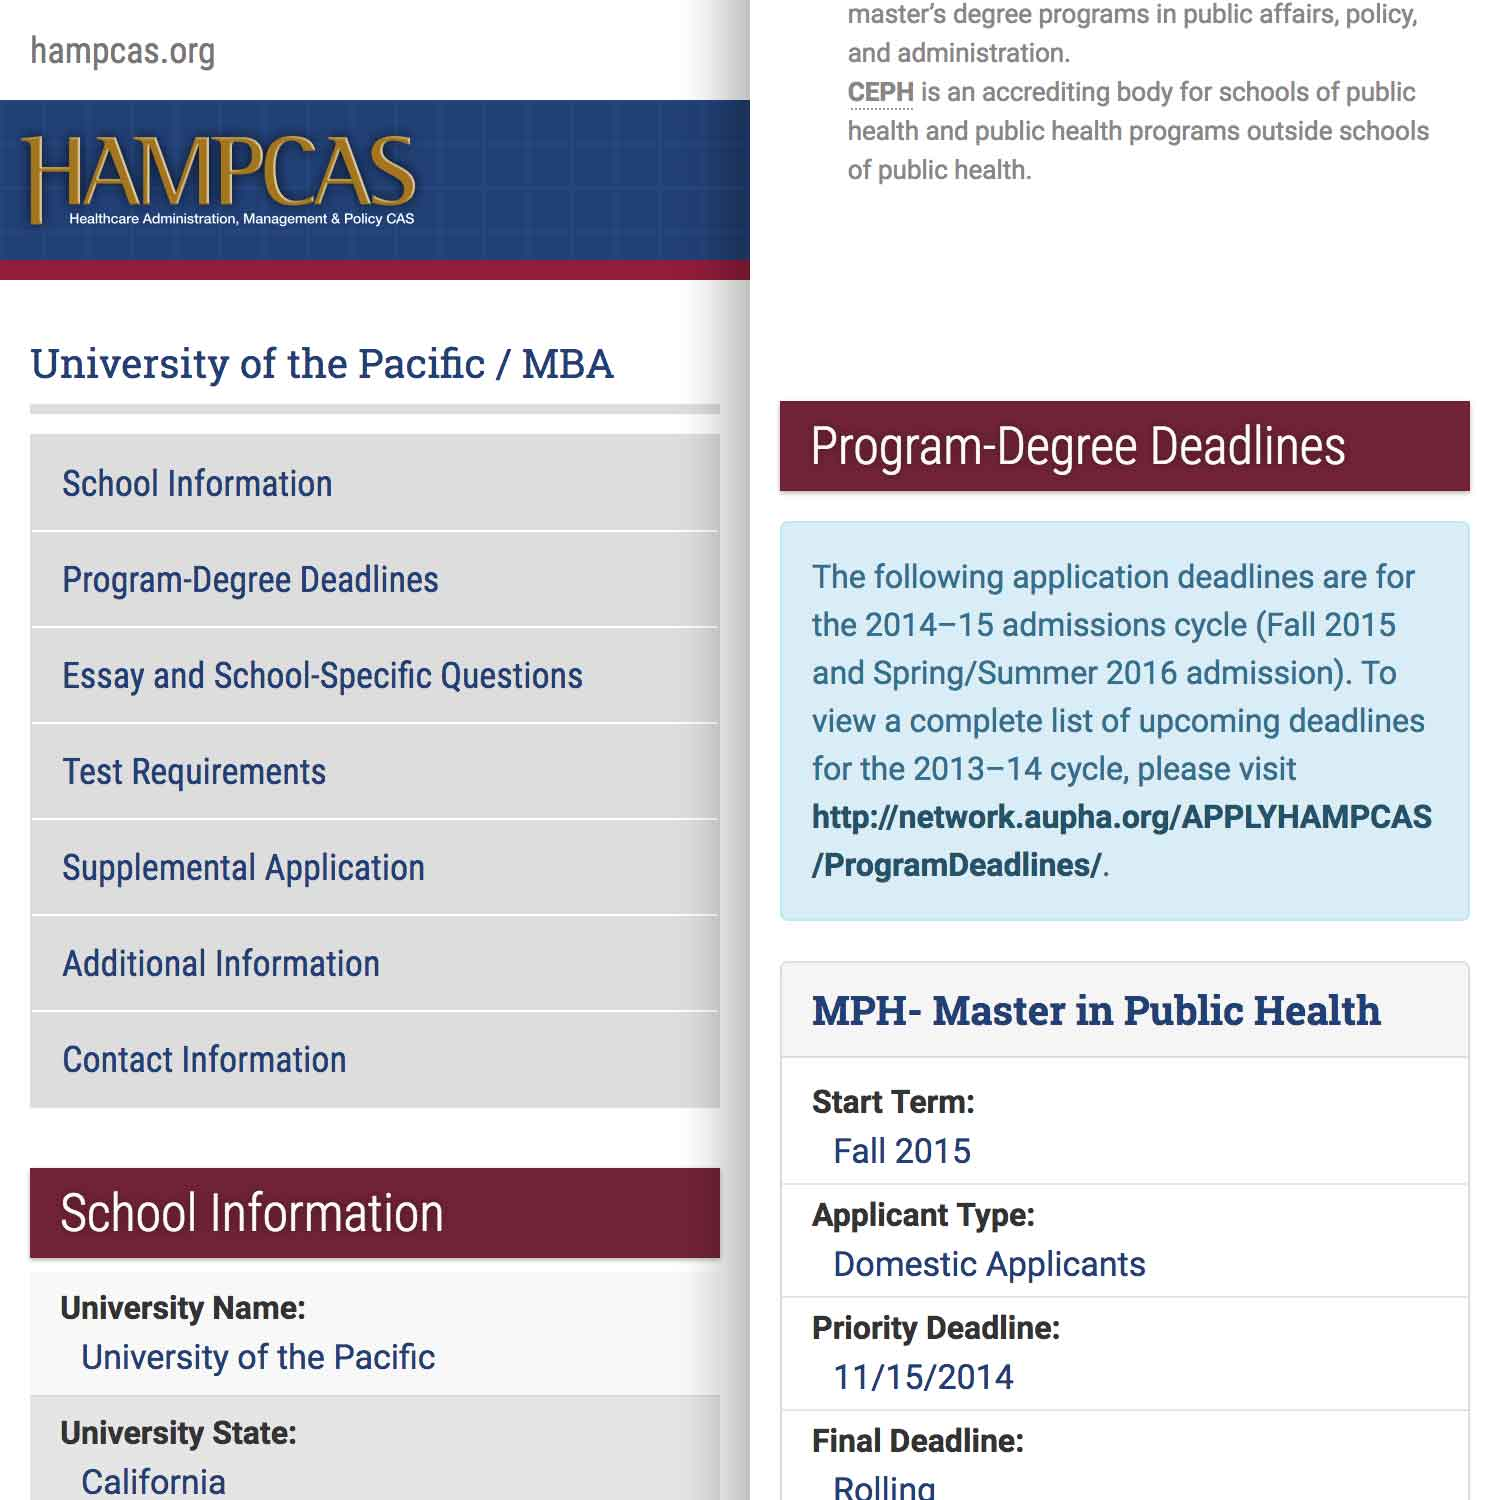 a screenshot showing two mobile layouts side-by-side of the HAMPCAS Program Page Demo